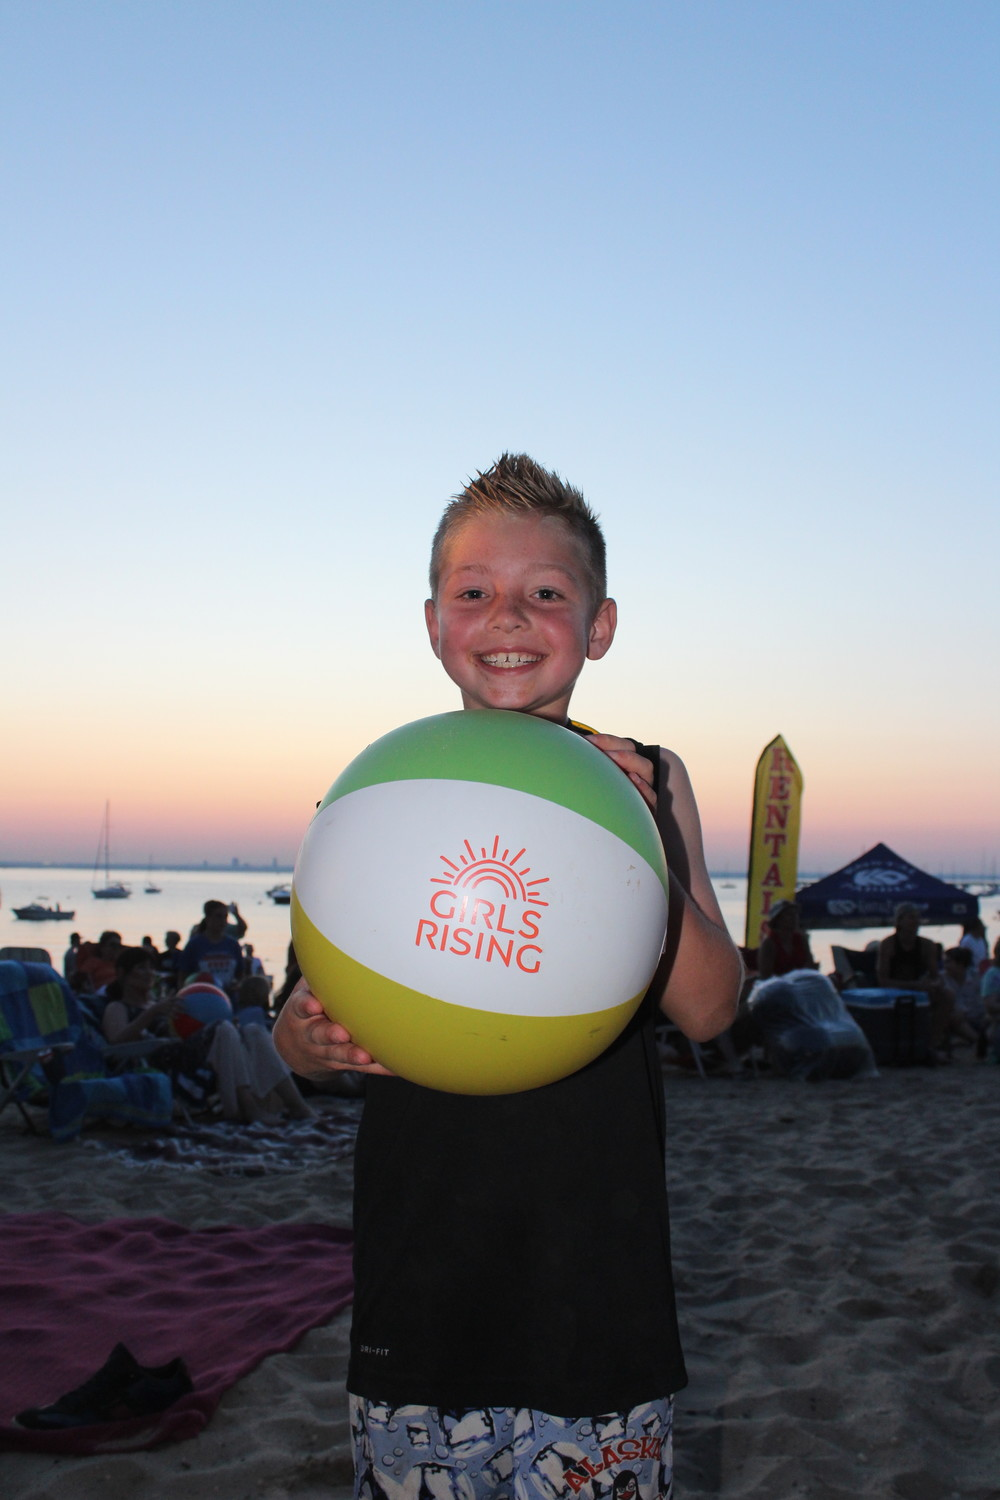 Jojo Basile, 9, played with a beach ball during the concert.